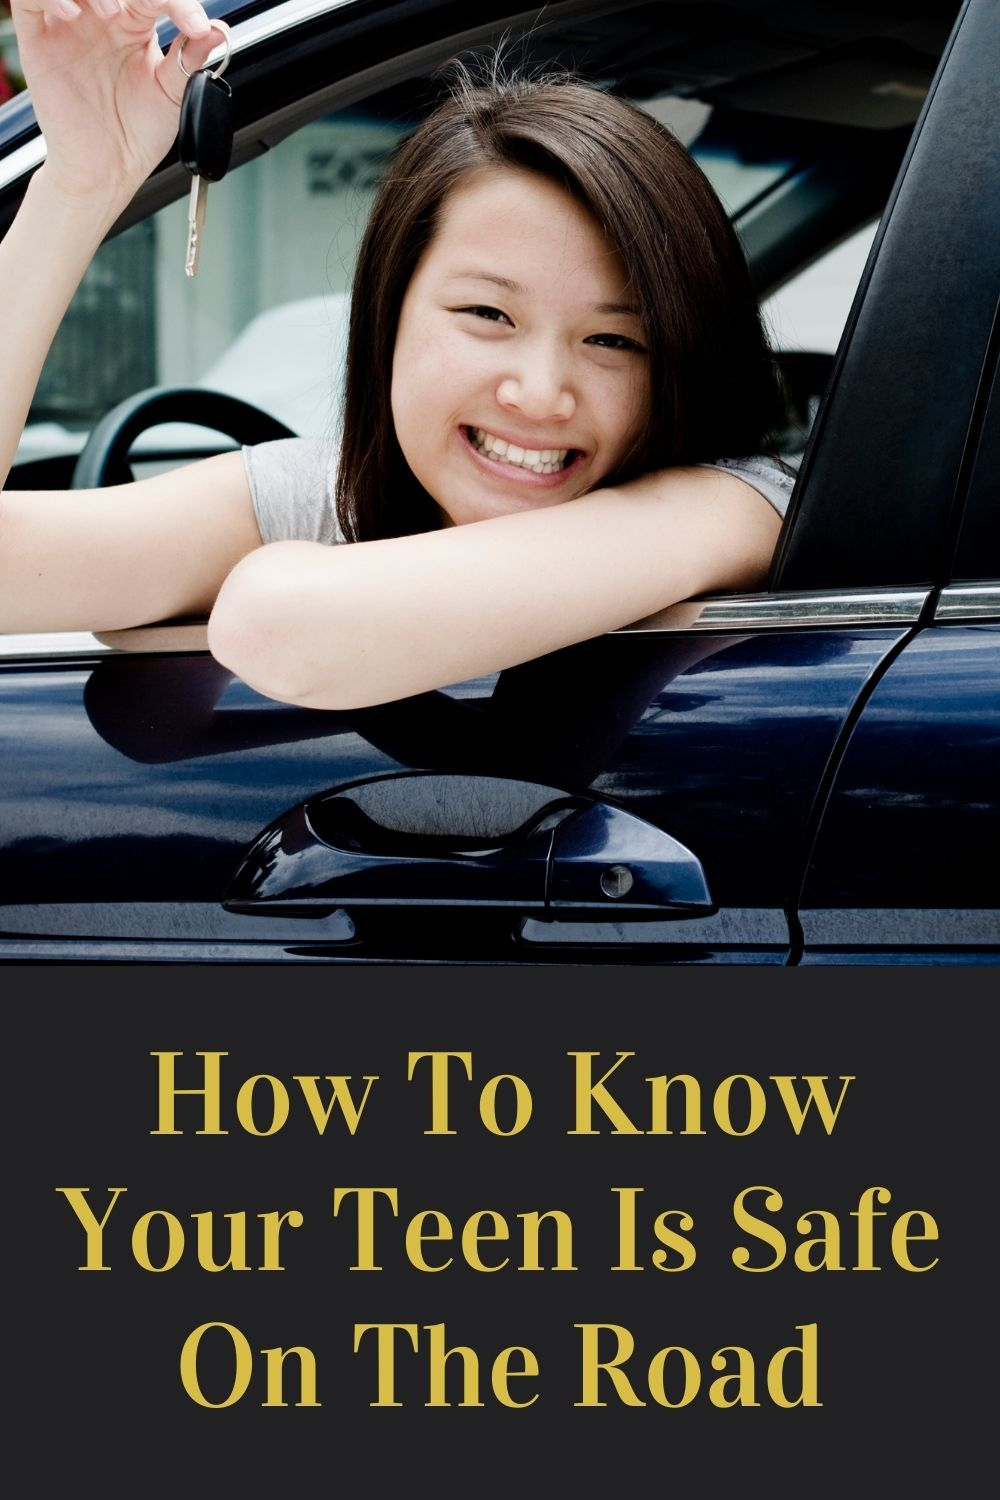 How To Know Your Teen Is Safe On The Road